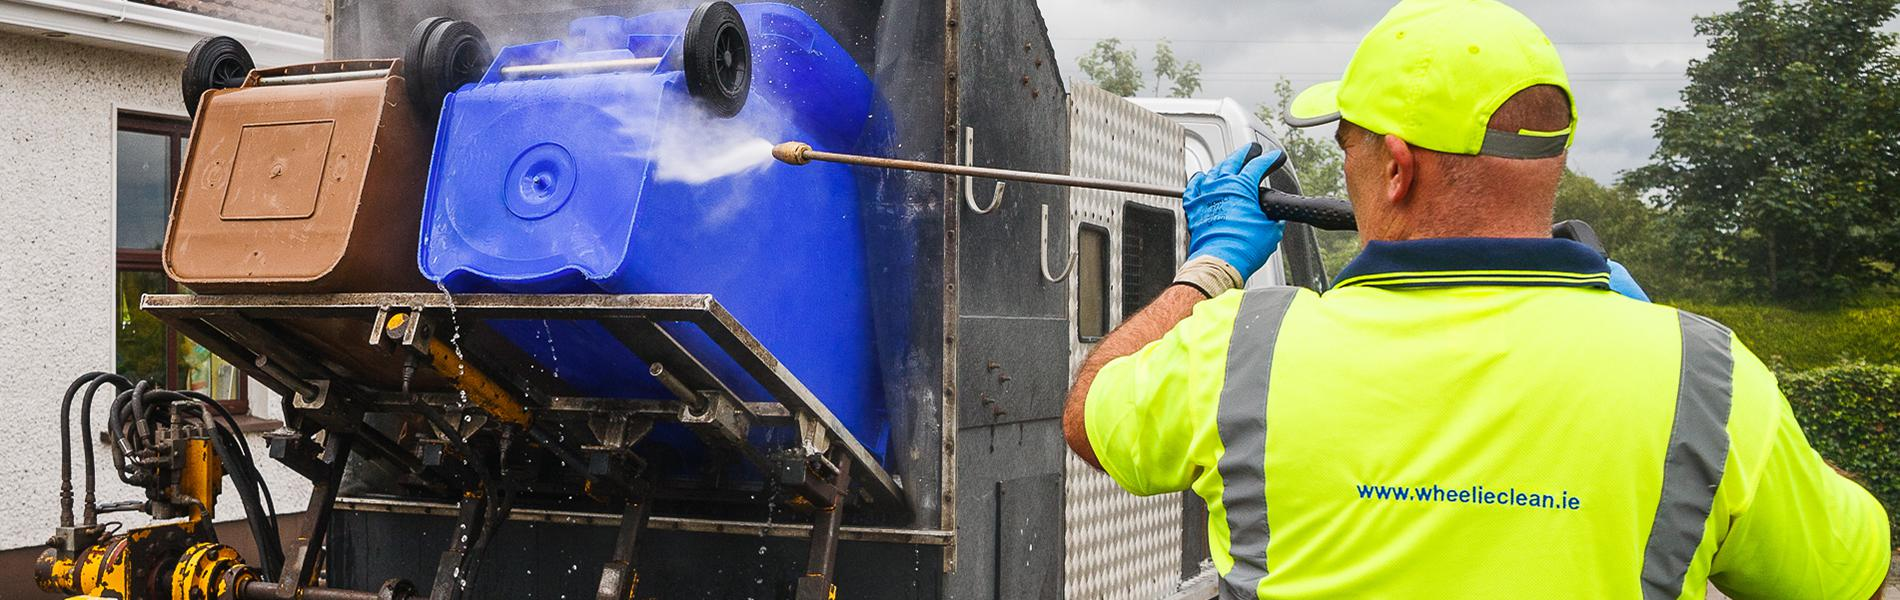 Wheelie Clean - Commercial Bin Cleaning Dublin